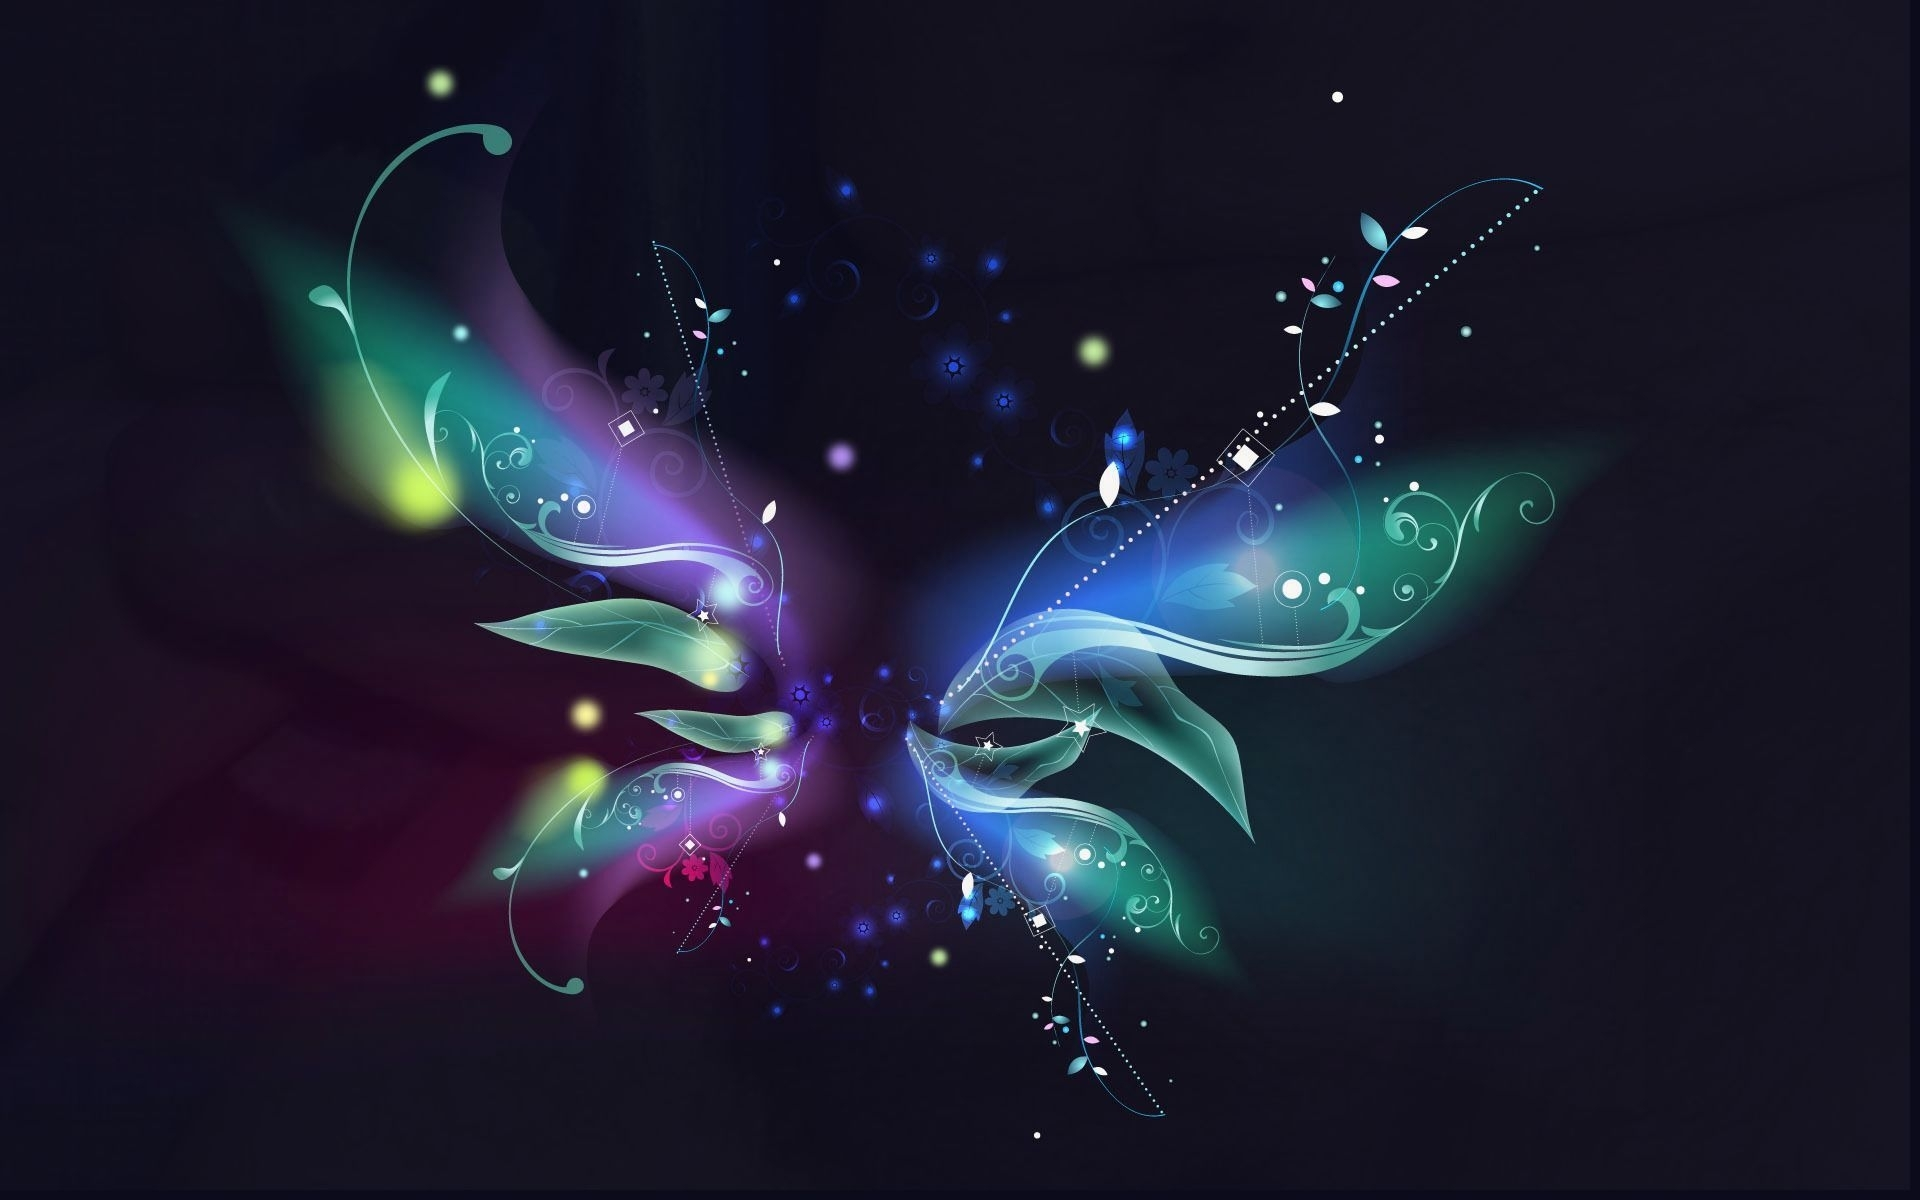 Colorful Butterfly Wallpapers 12 Cool Hd Wallpaper   Hivewallpapercom 1920x1200